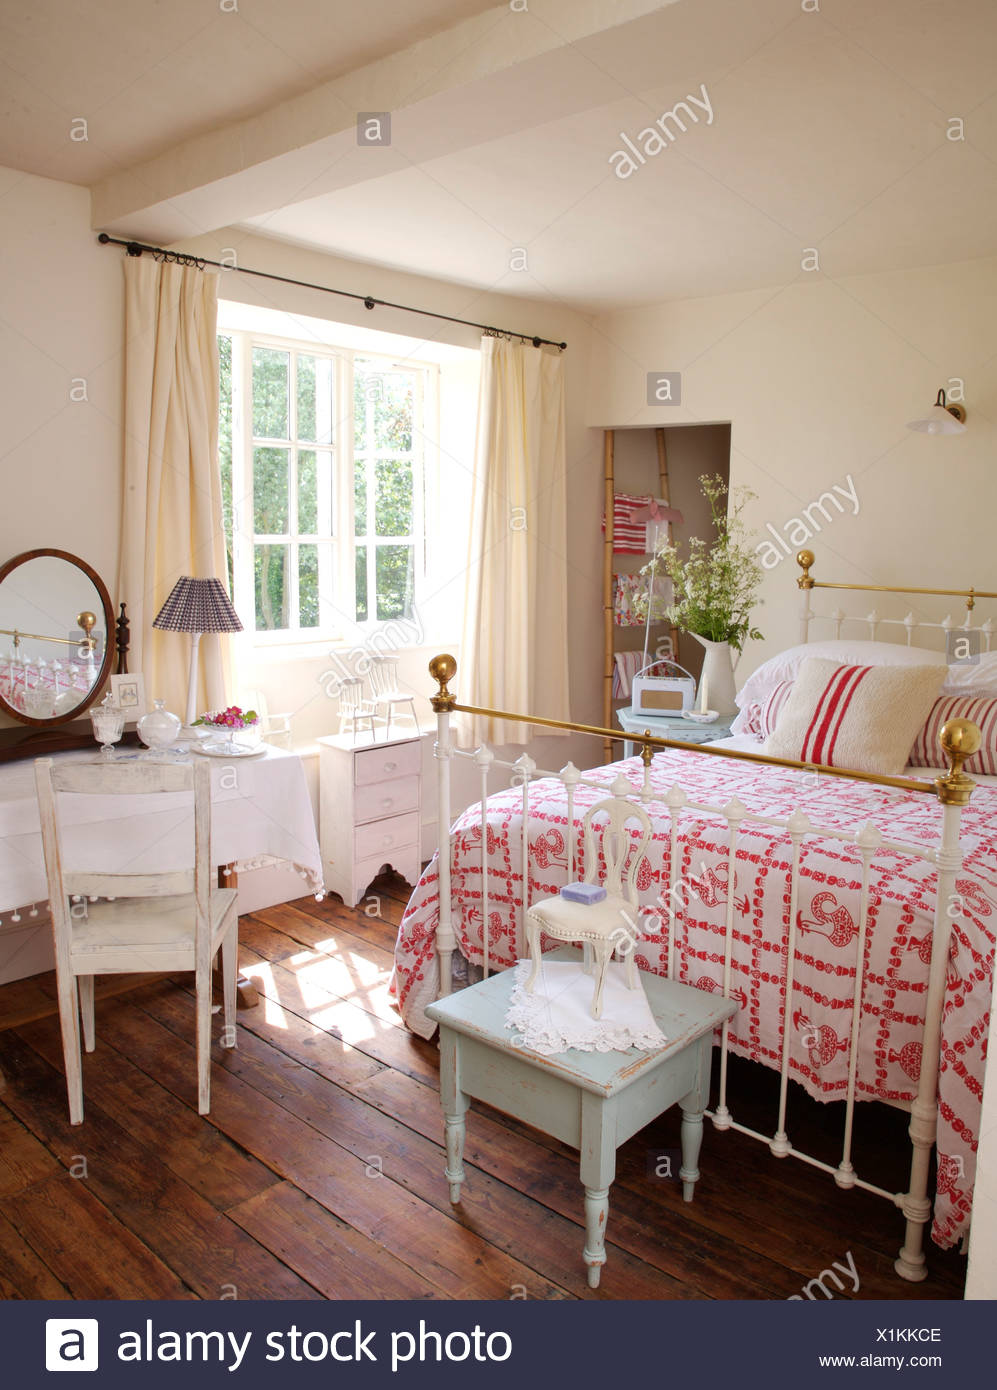 Small blue table below antique brass bed with pink+white ...